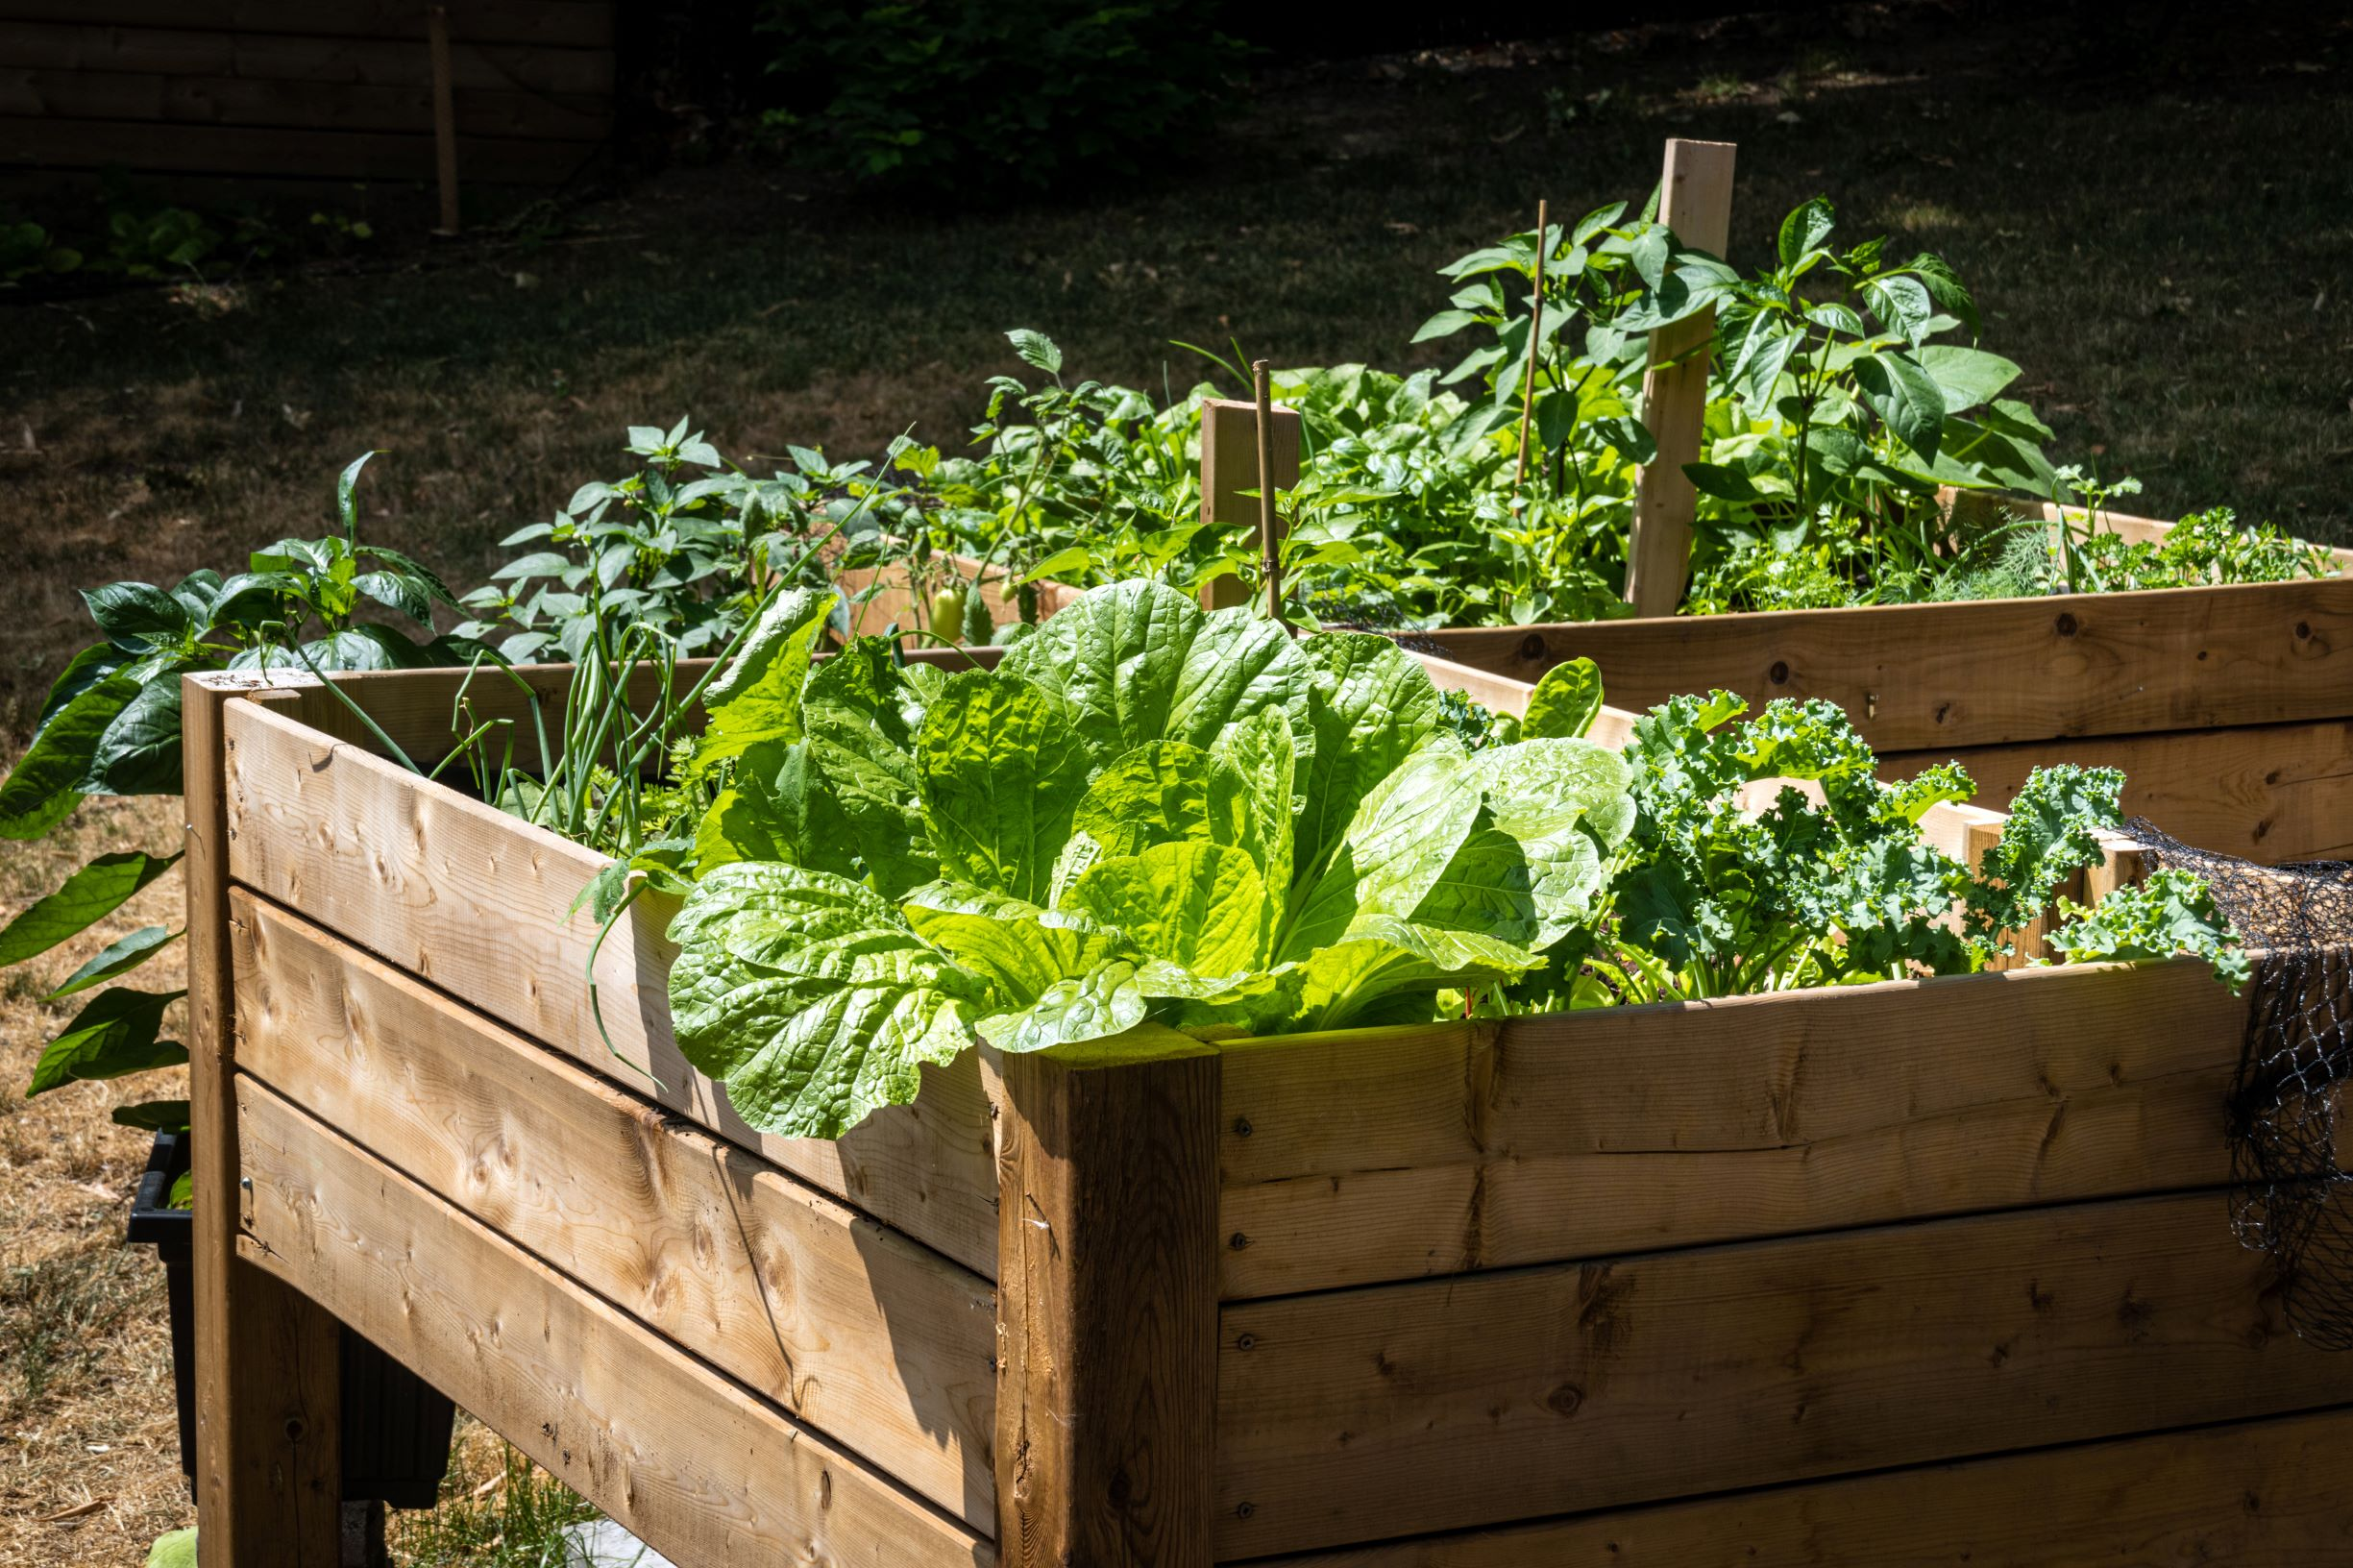 No-Till Gardening: Easy/Low Labor Methods for Starting a Garden From Scratch